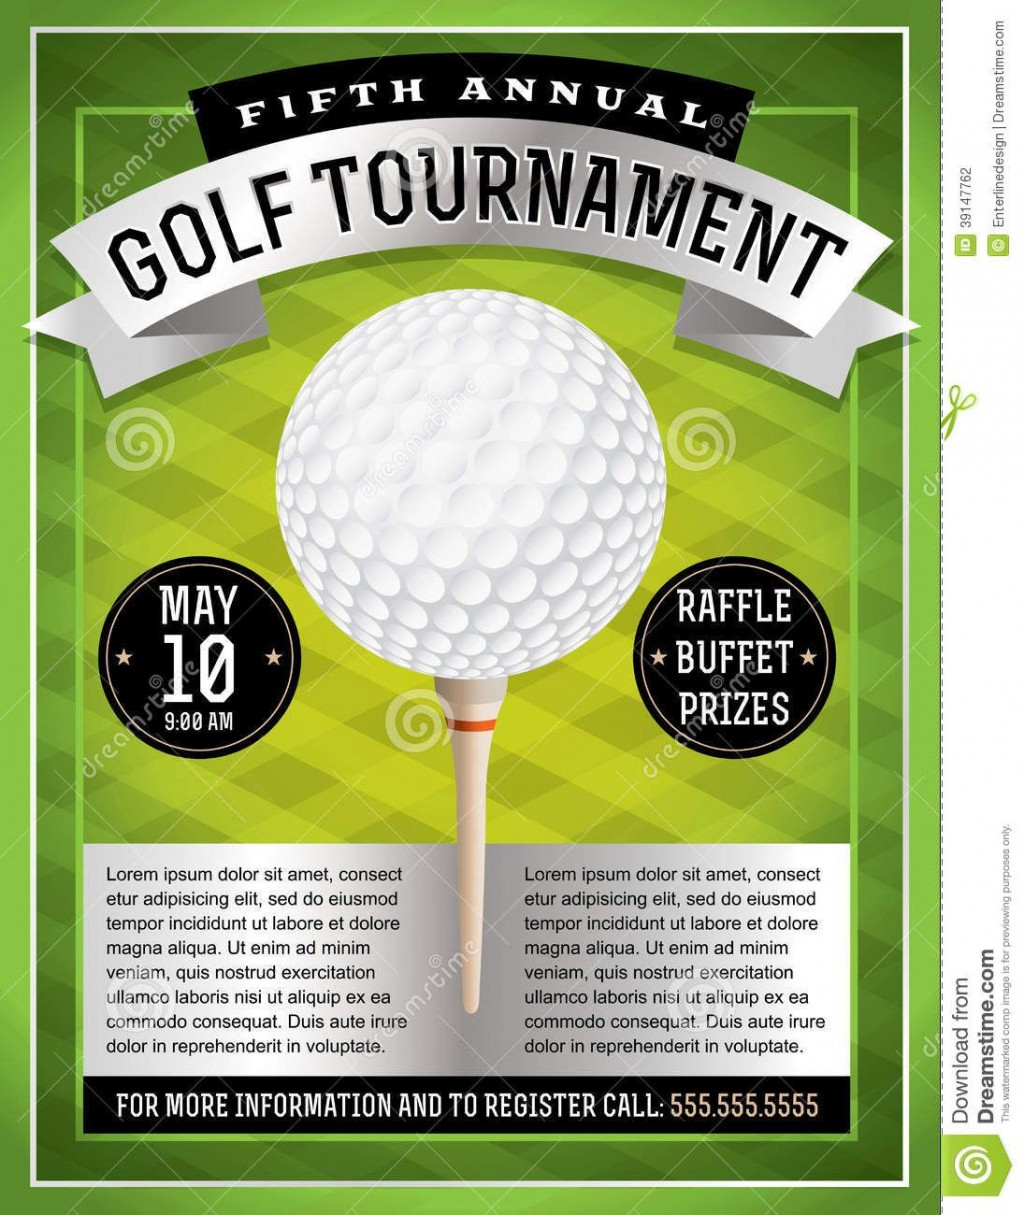 007 Imposing Golf Tournament Flyer Template Image  Word Free PdfLarge